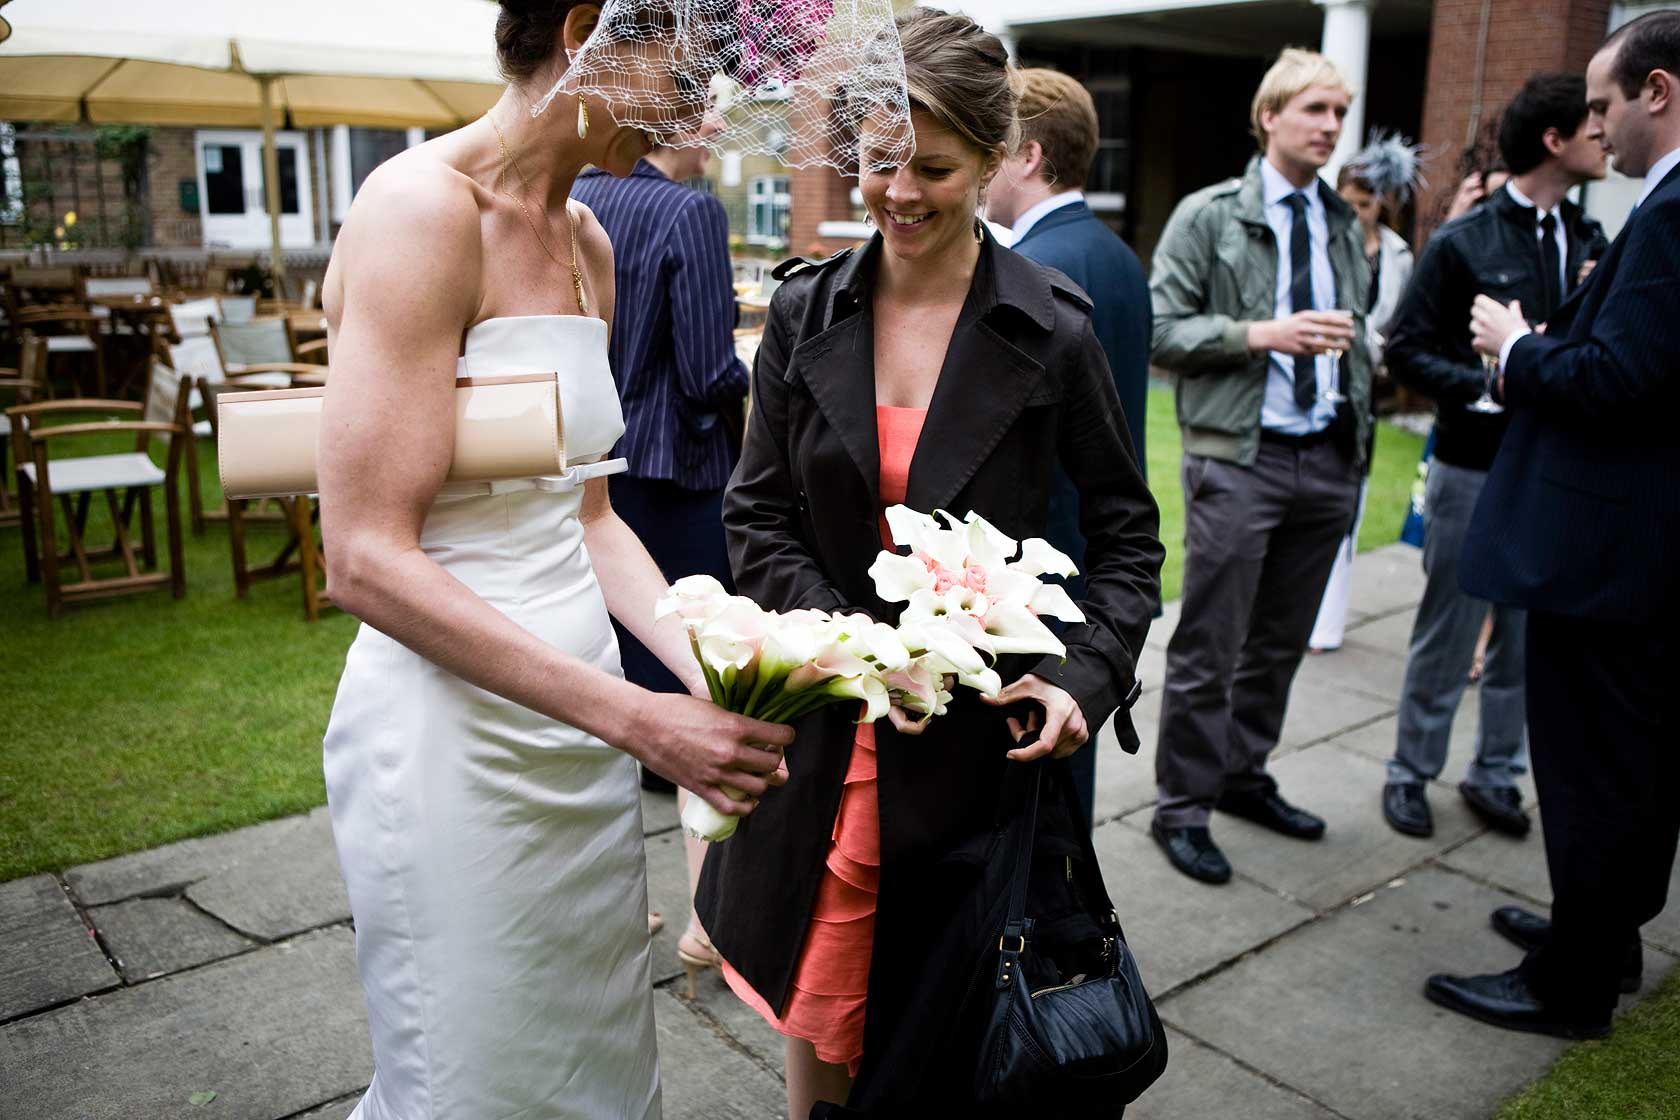 Reportage Wedding Photography at Lords Cricket Ground